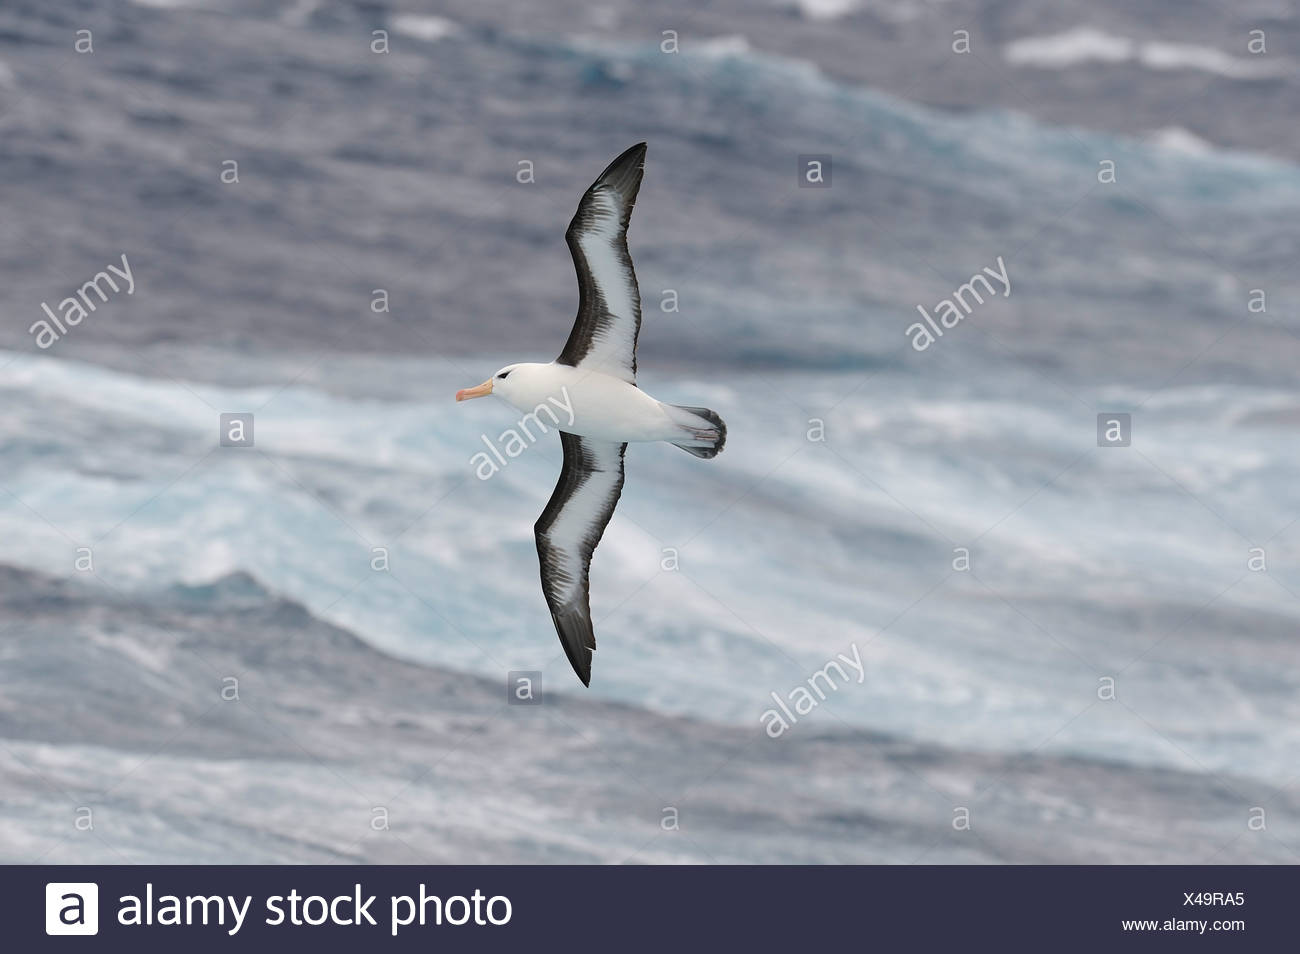 Antarctica, Drake Passage, Black-browed albatross flying over water - Stock Image